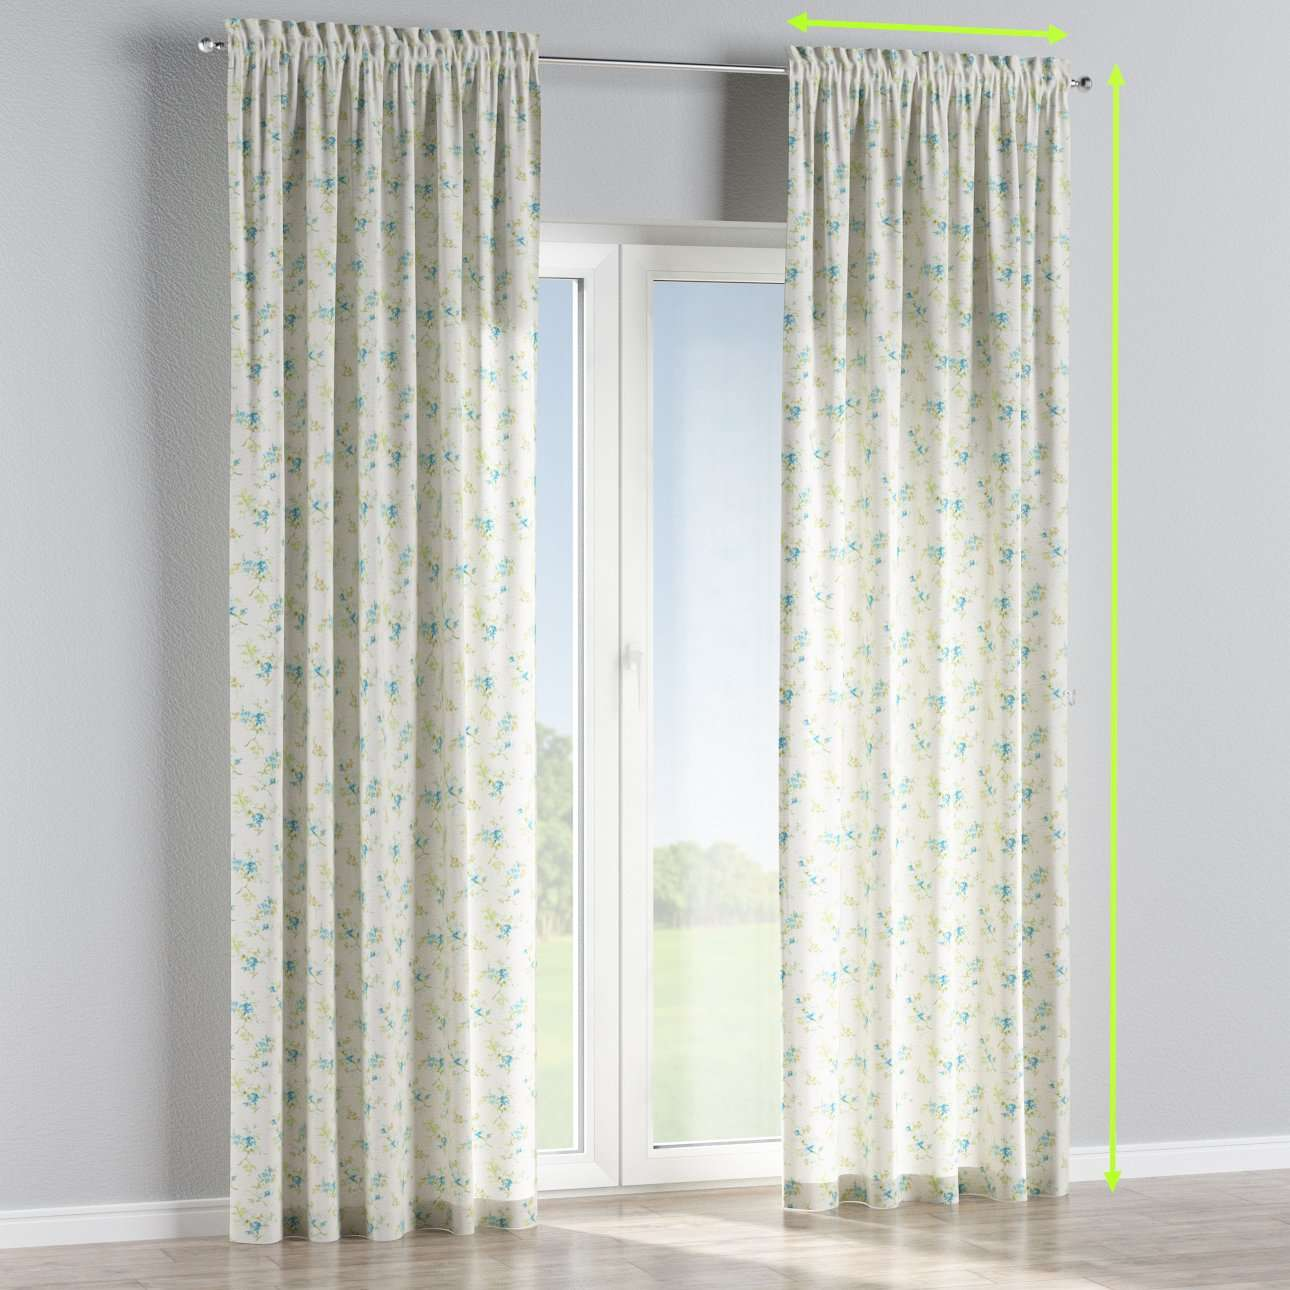 Slot and frill lined curtains in collection Mirella, fabric: 141-16